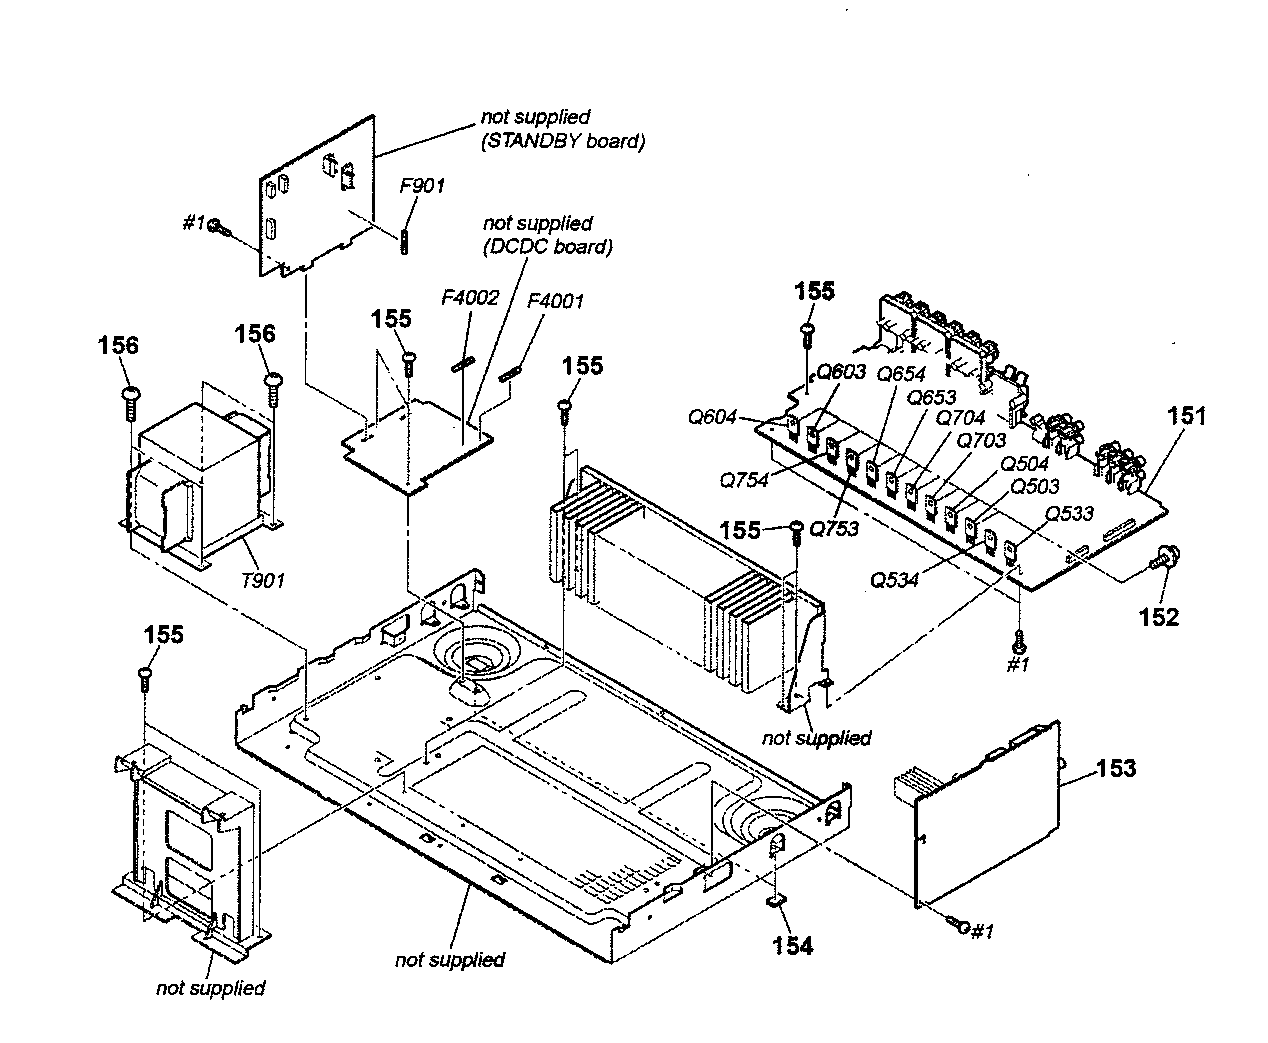 CHASSIS Diagram & Parts List for Model STR-DG710 Sony